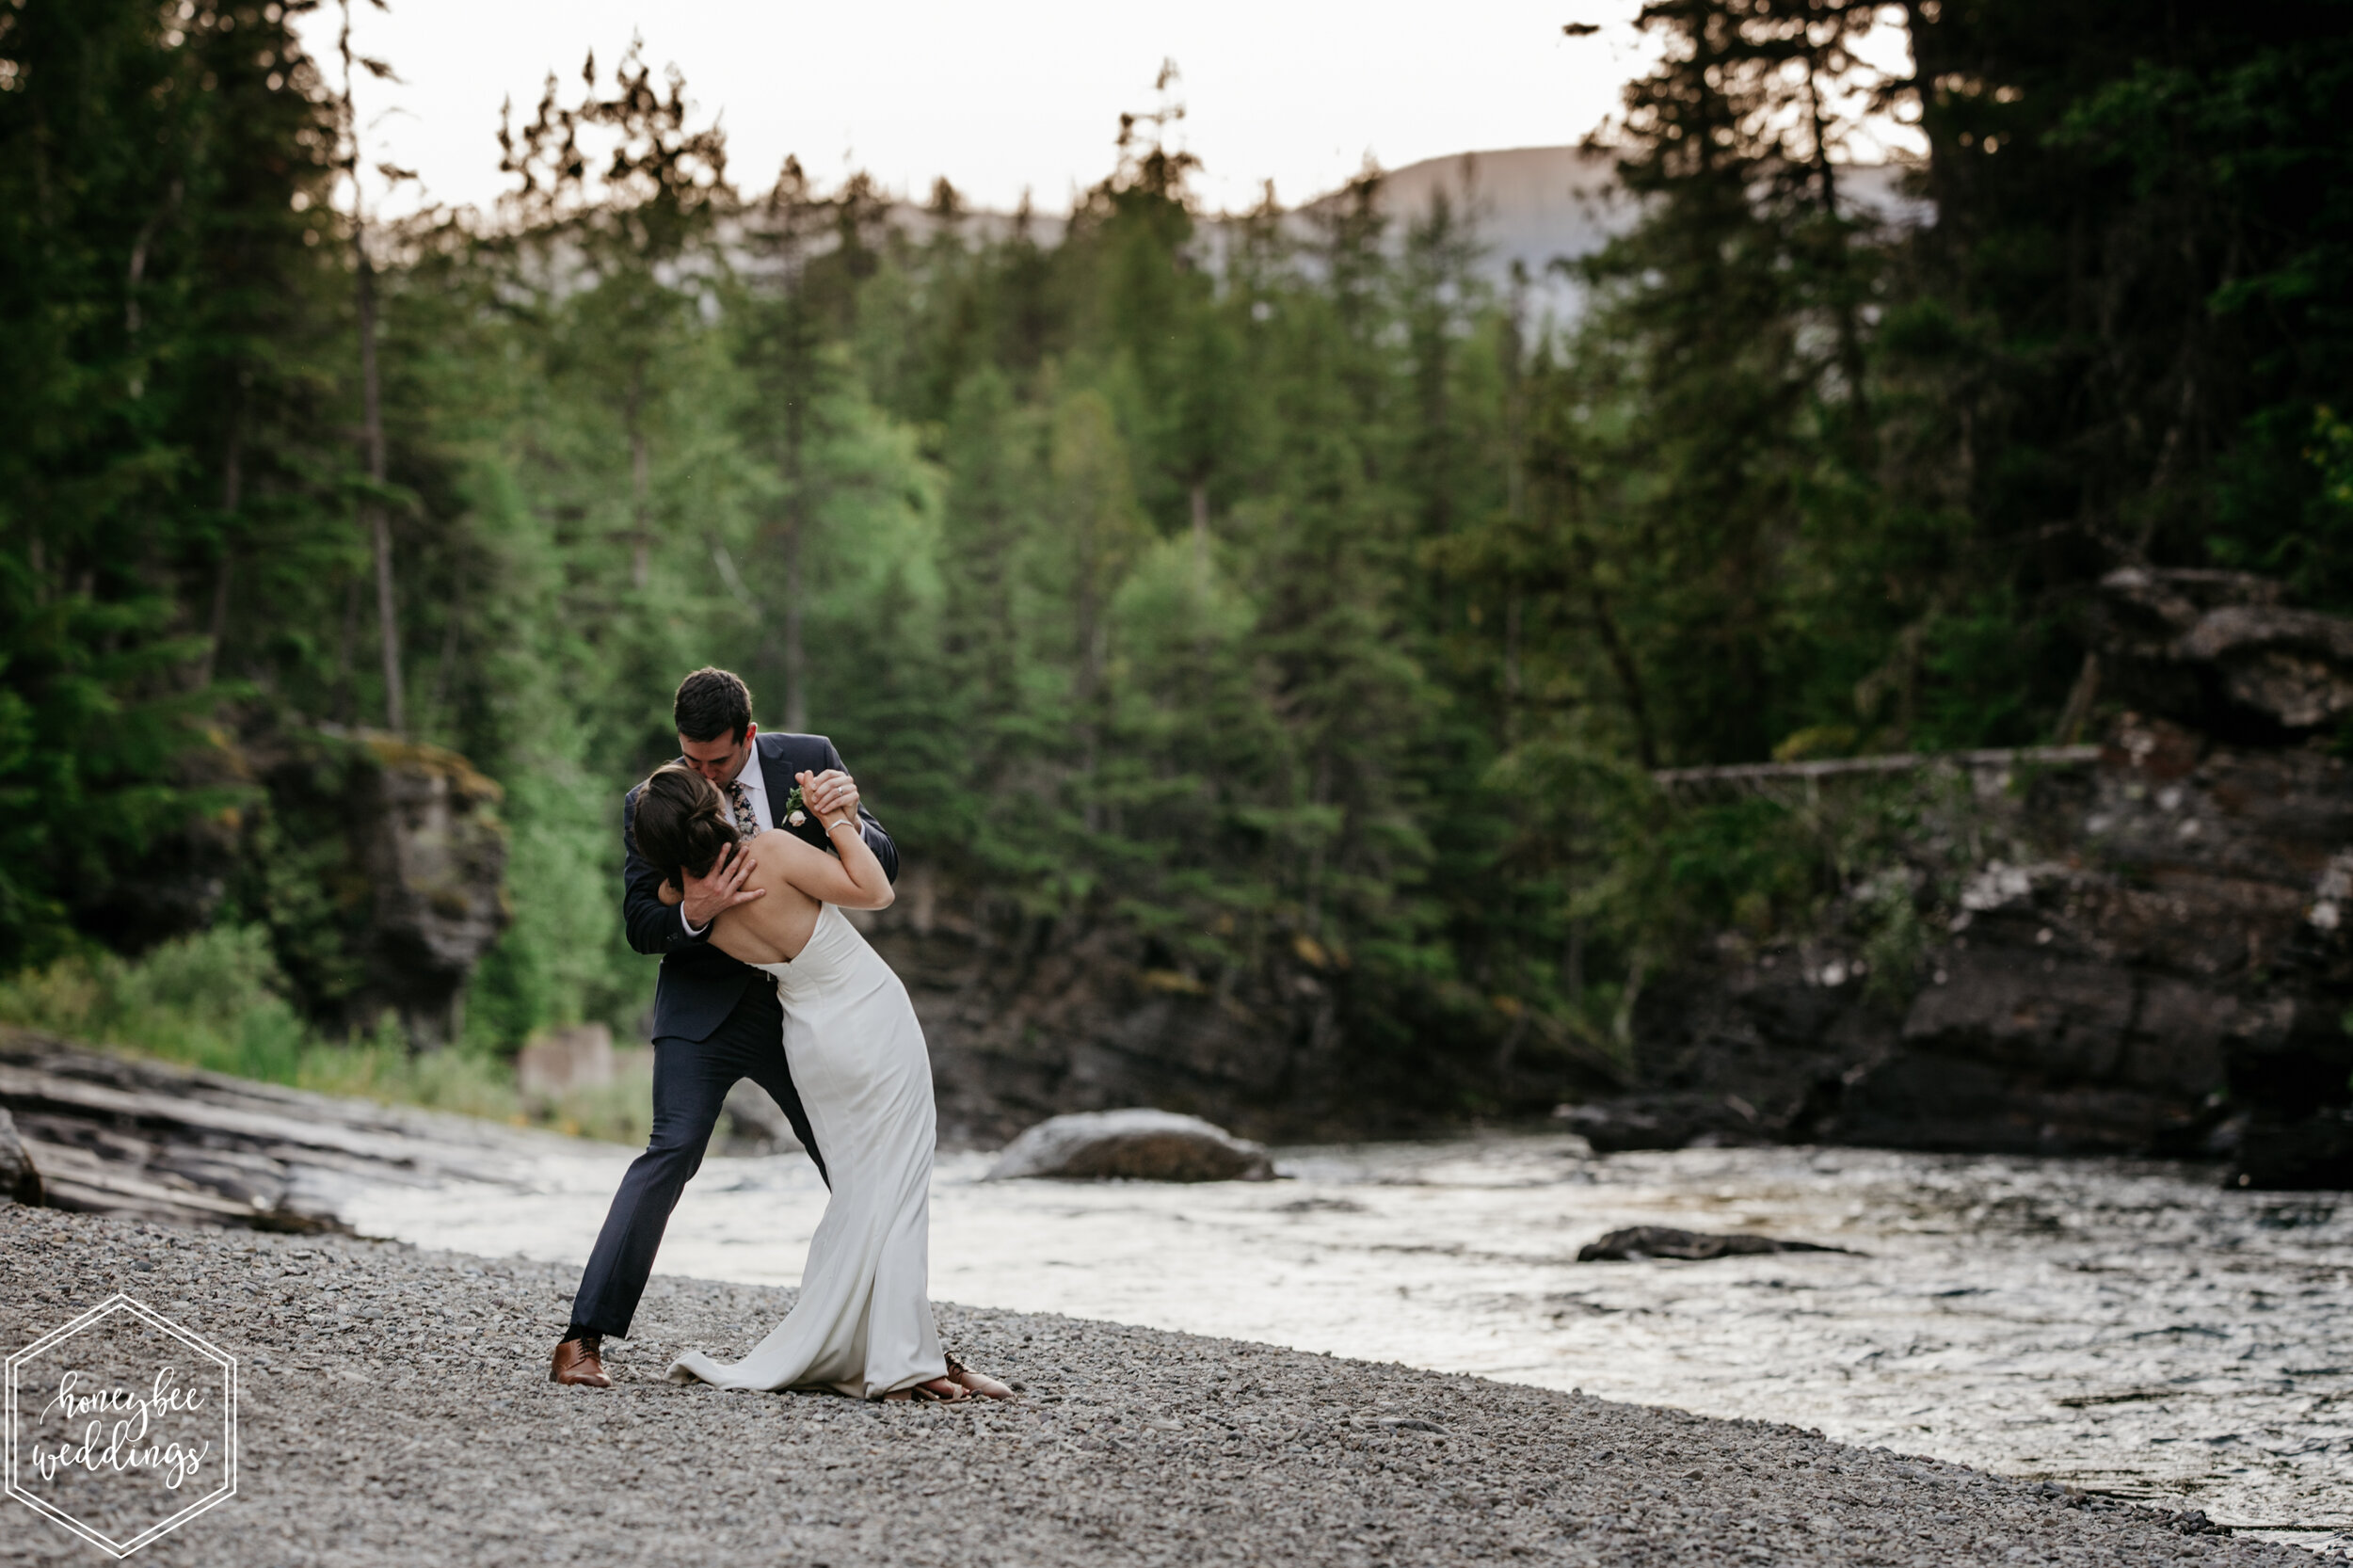 011Glacier National Park Wedding_Glacier Outdoor Center_Honeybee Weddings_Anna & Seth_July 21, 2019-1642.jpg